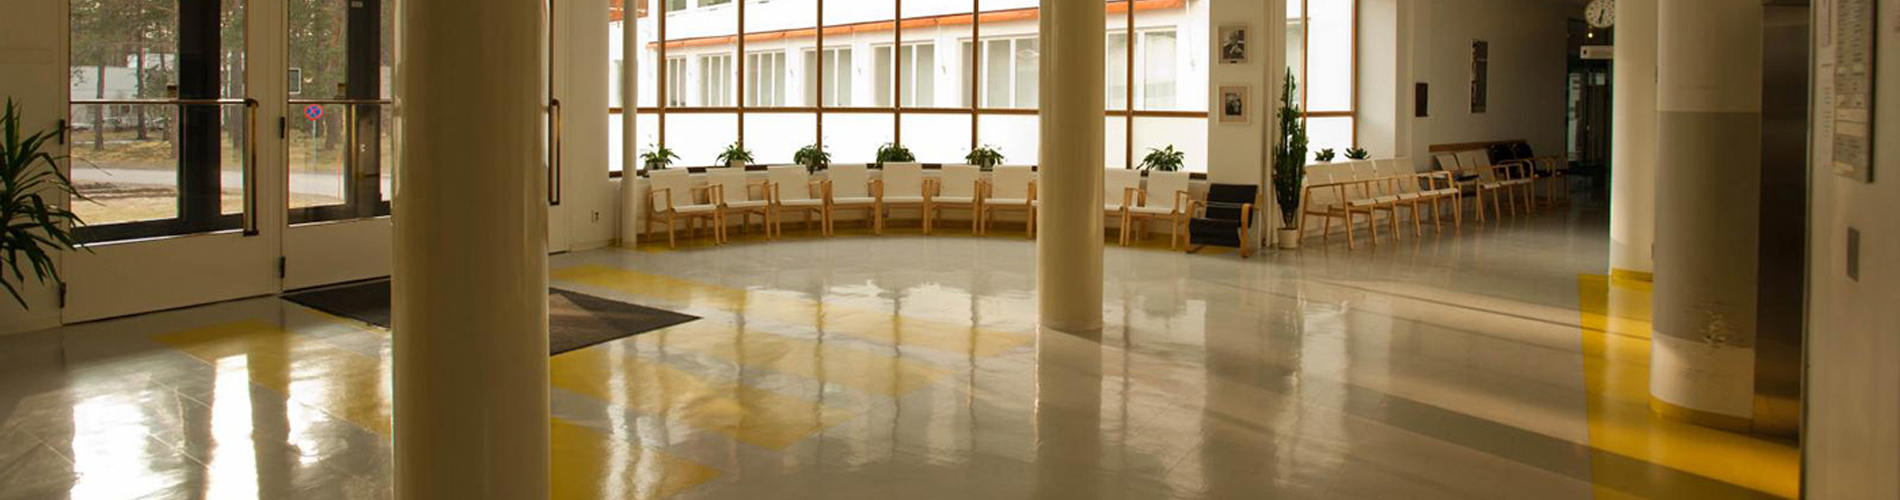 Complete Janitorial ServicesProfessional Care For All Facilities